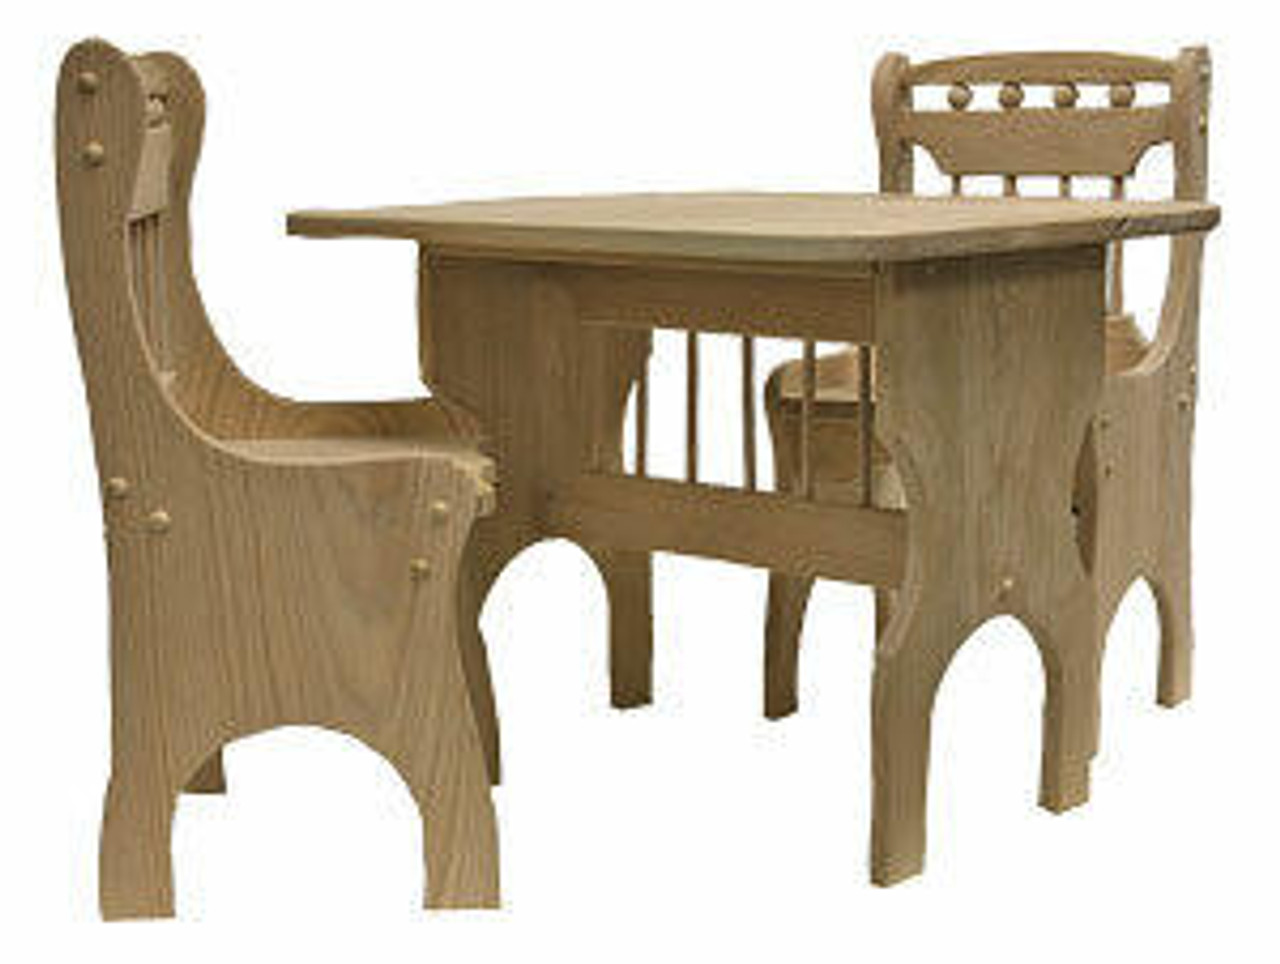 Cherry Tree Toys Childrens Table and Chairs Plan